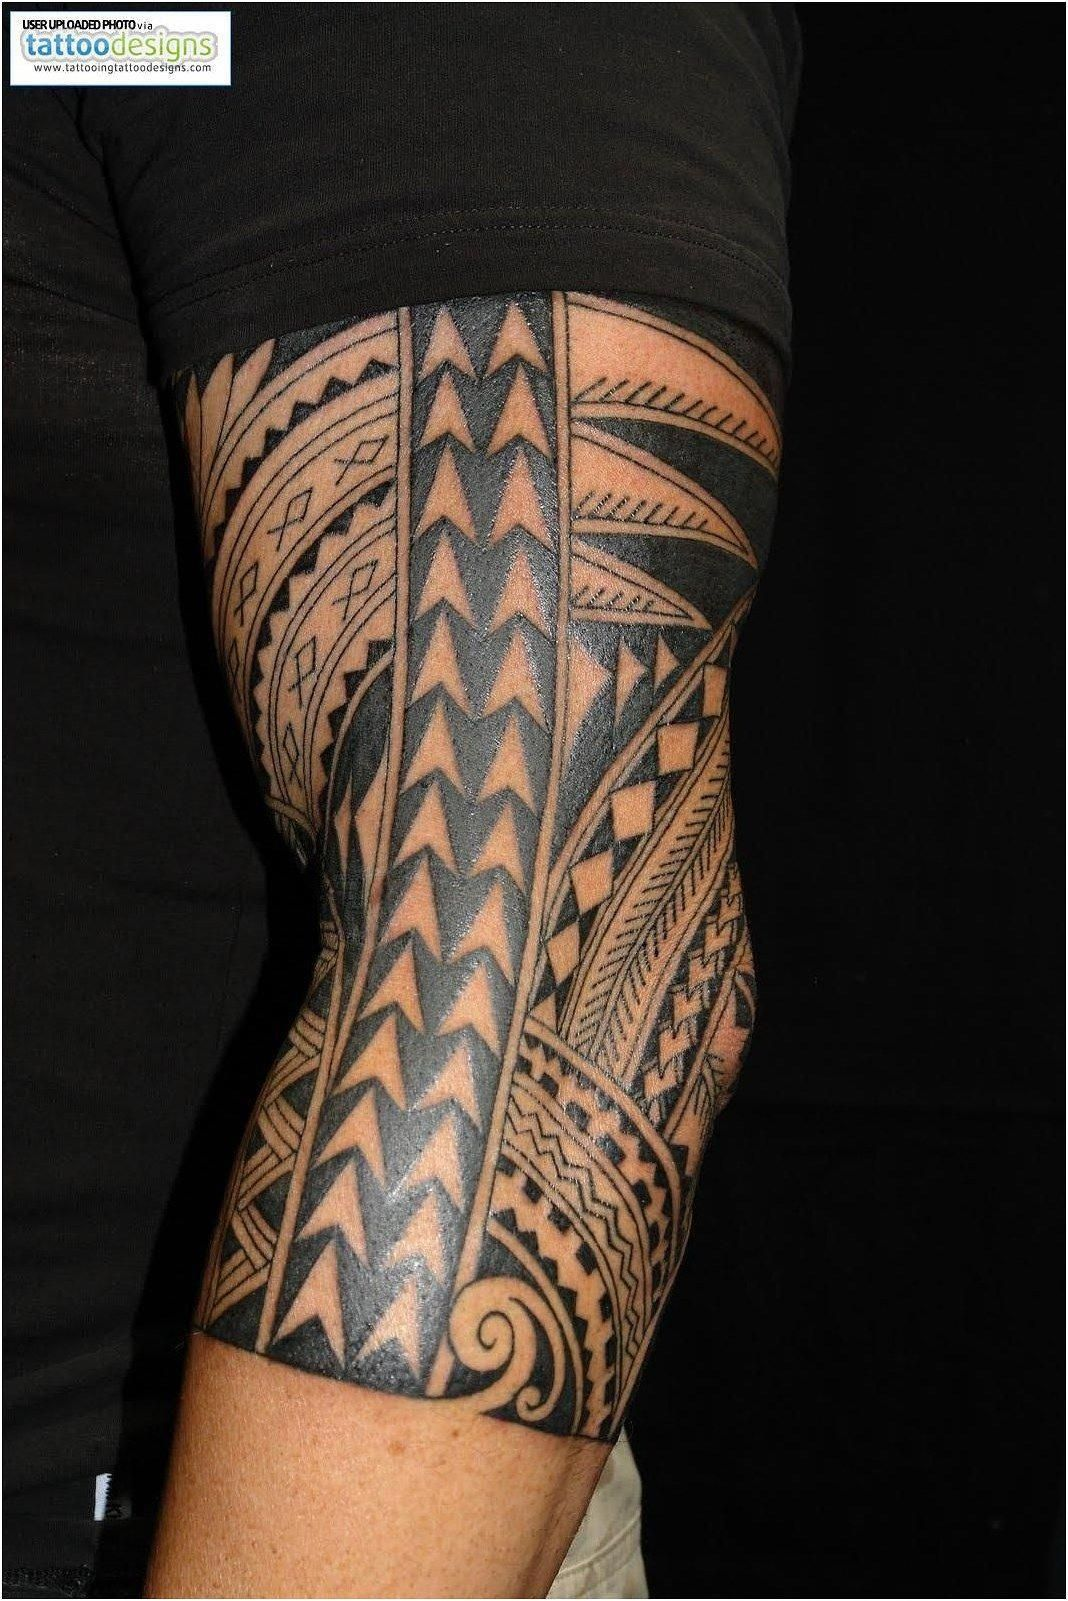 101 best tattoo ideas and designs for men 2019 guide - HD 1068×1601